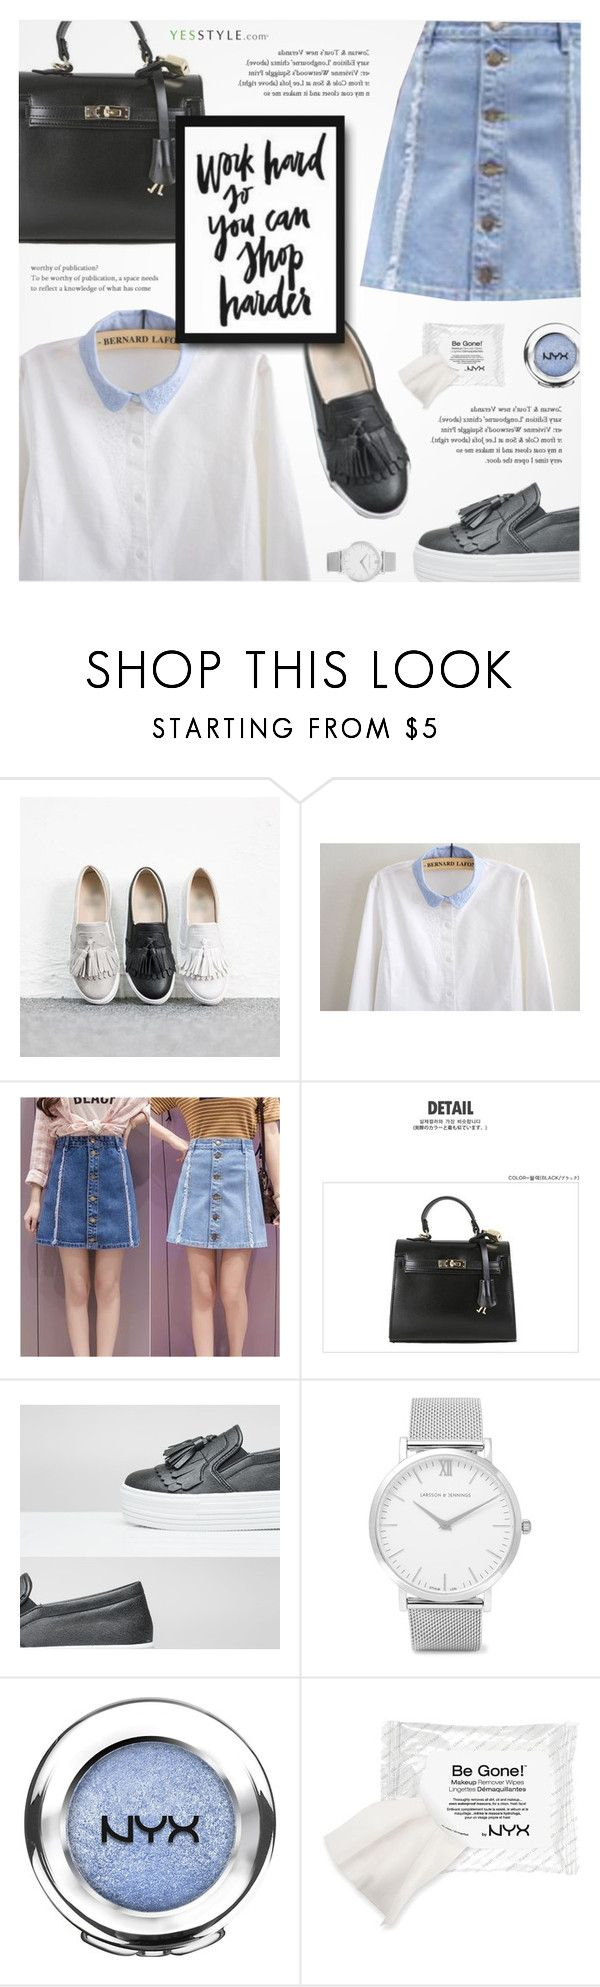 """""""YesStyle - 10% off coupon"""" by novalikarida ❤ liked on Polyvore featuring Larsson & Jennings, NYX, Charlotte Russe, Winter and yesstyle"""